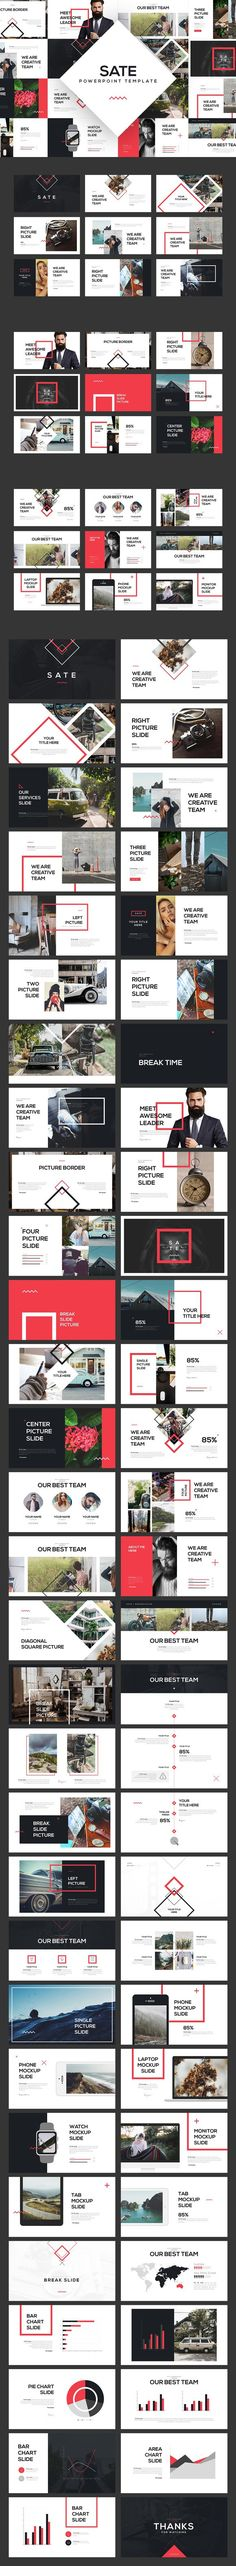 SATE PowerPoint Template. Presentation Templates. $15.00